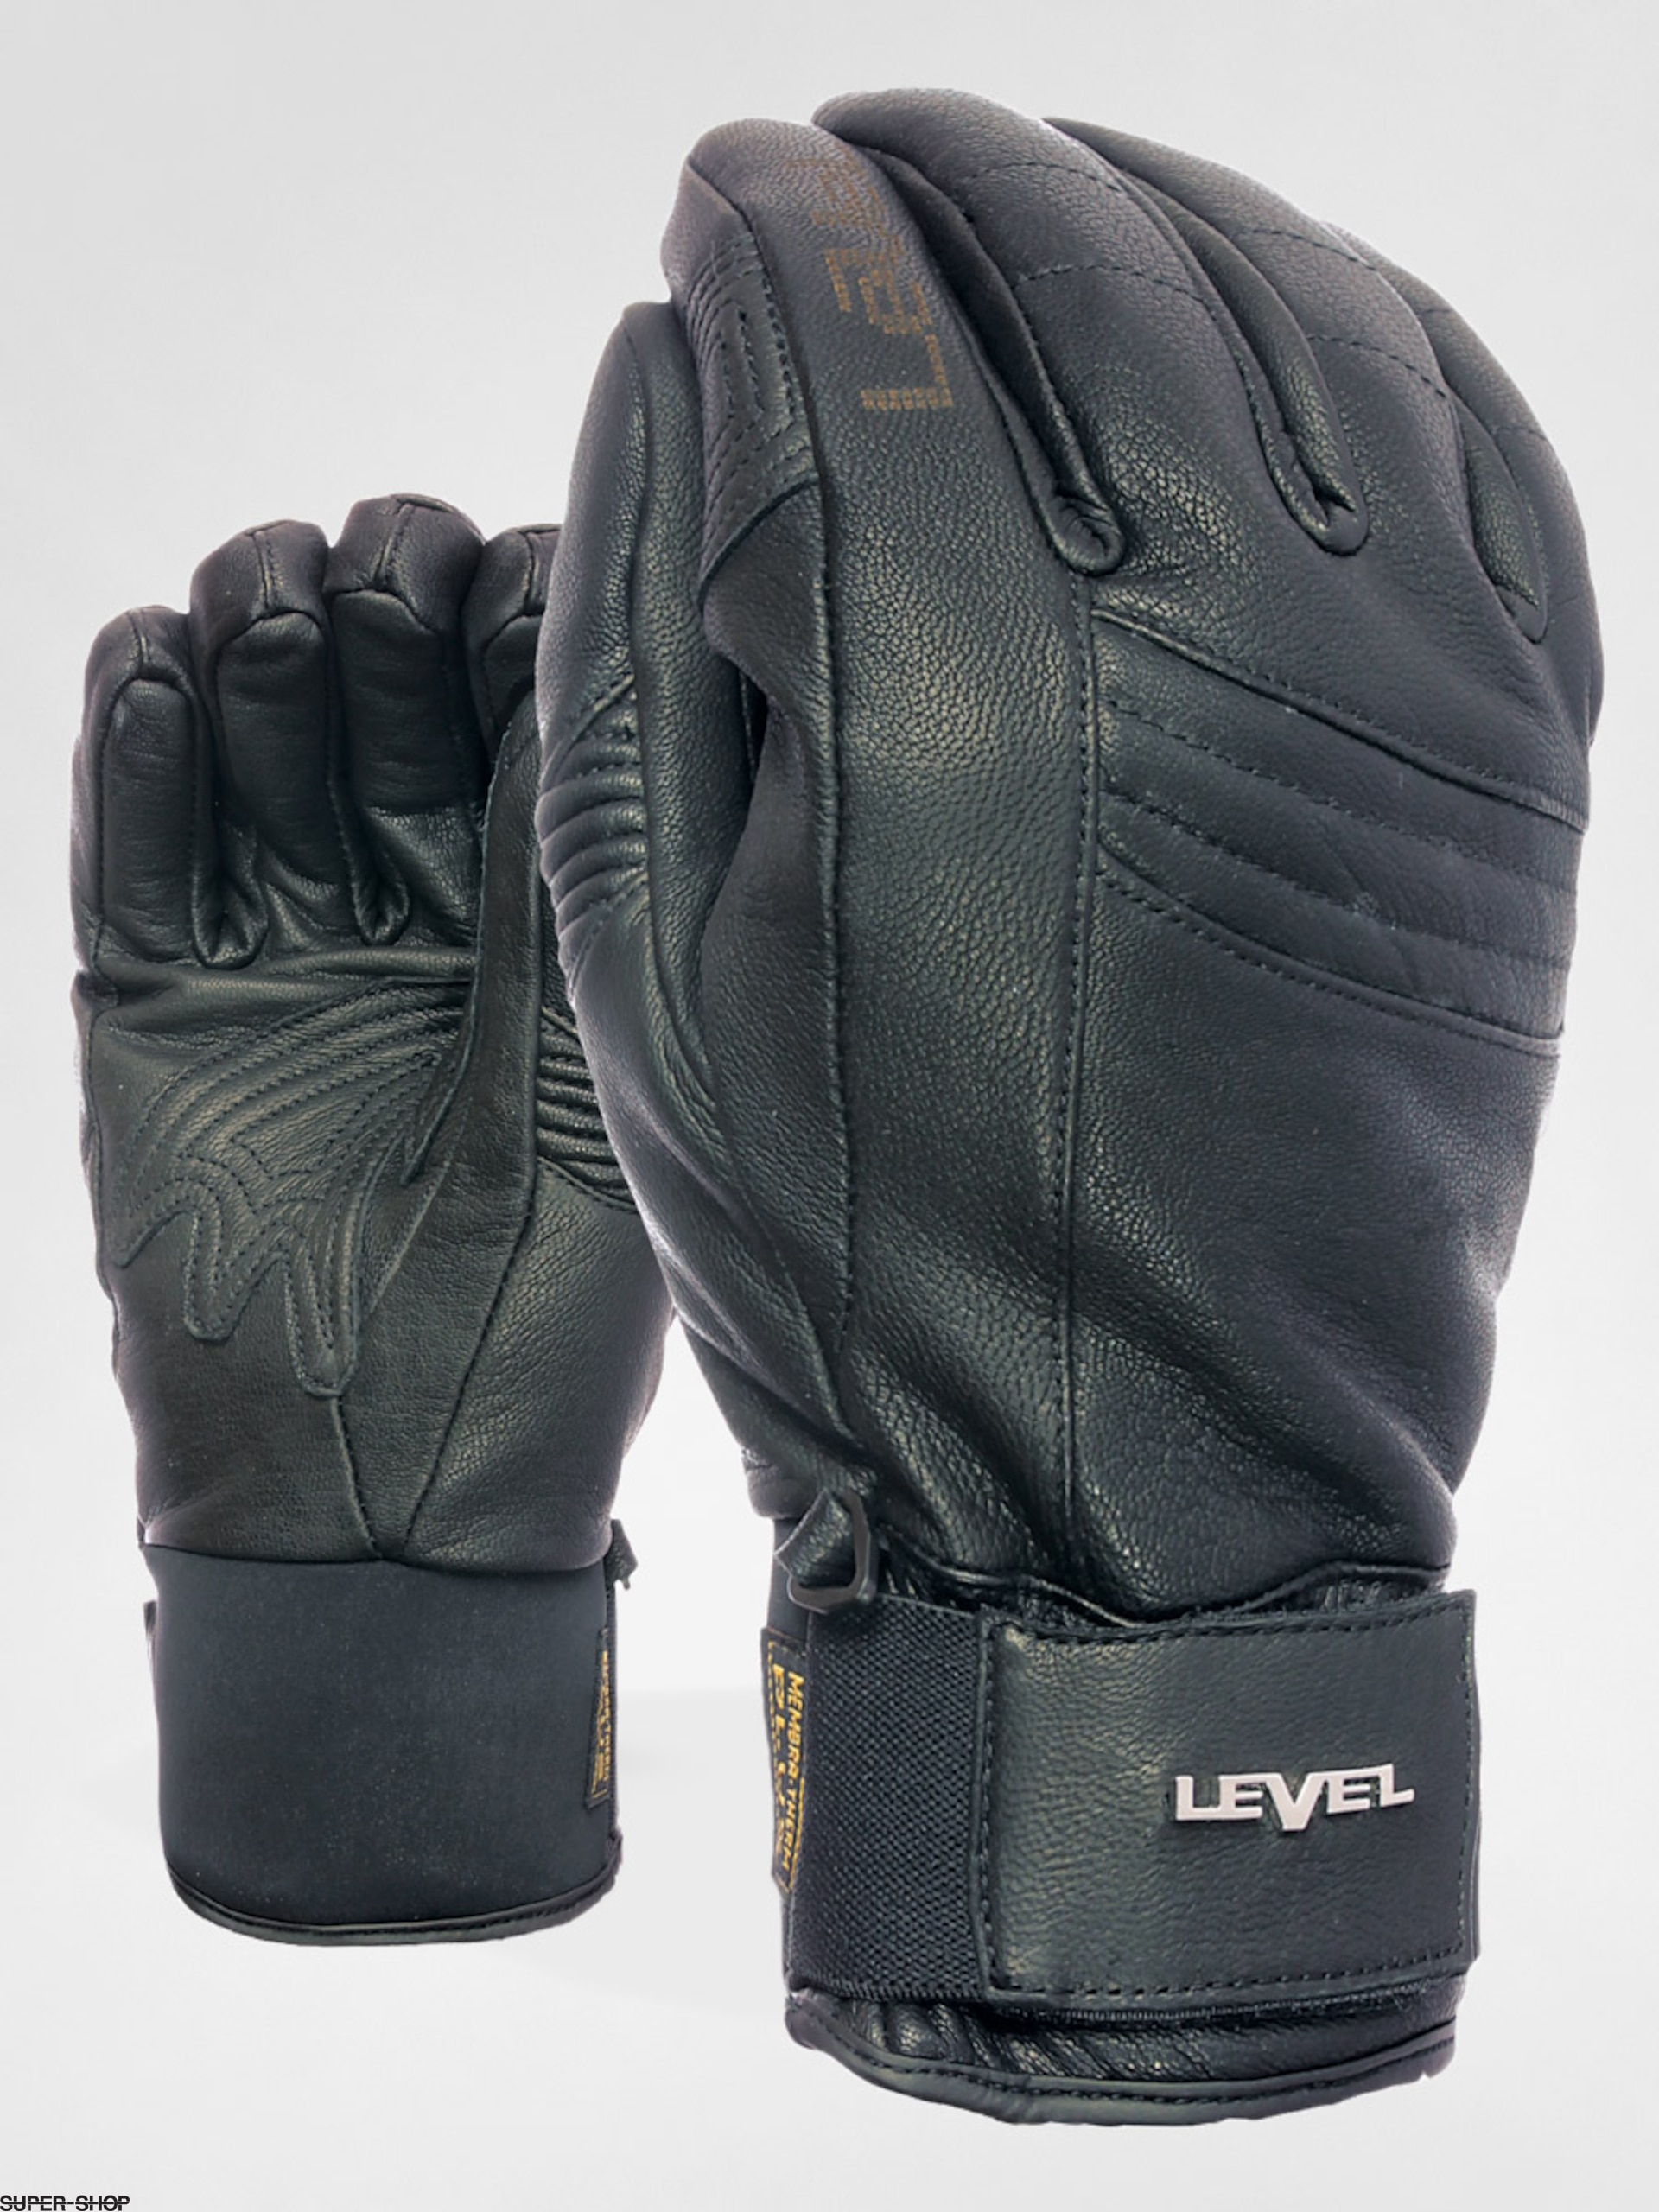 Level Gloves Rexford (black)